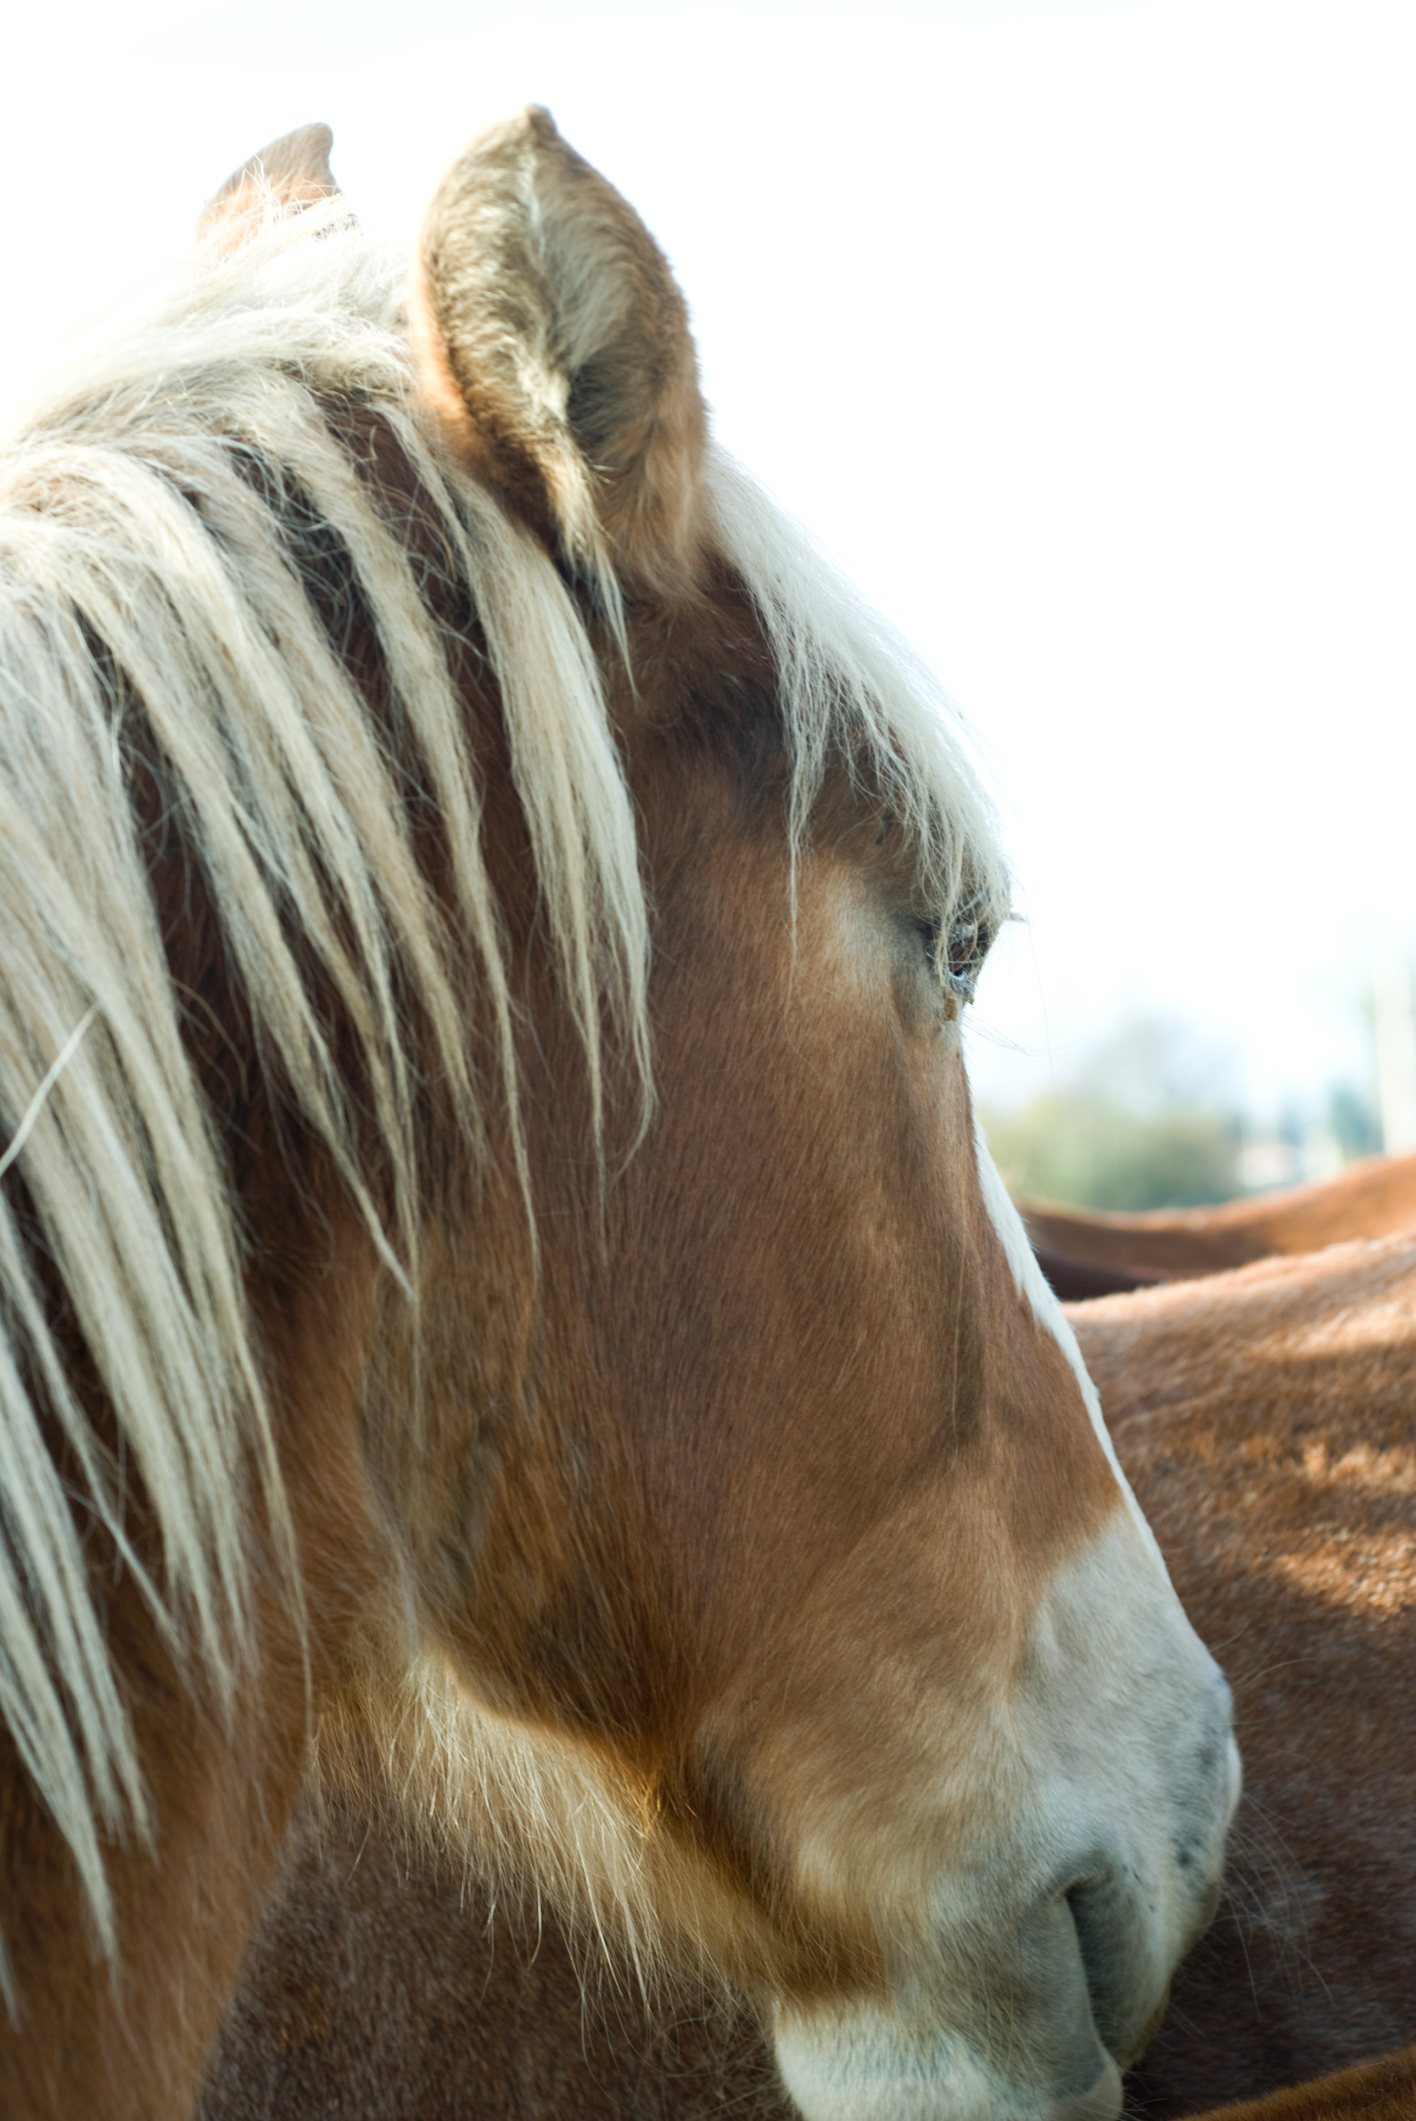 The RSPCA is appealing for help in finding temporary homes for horse